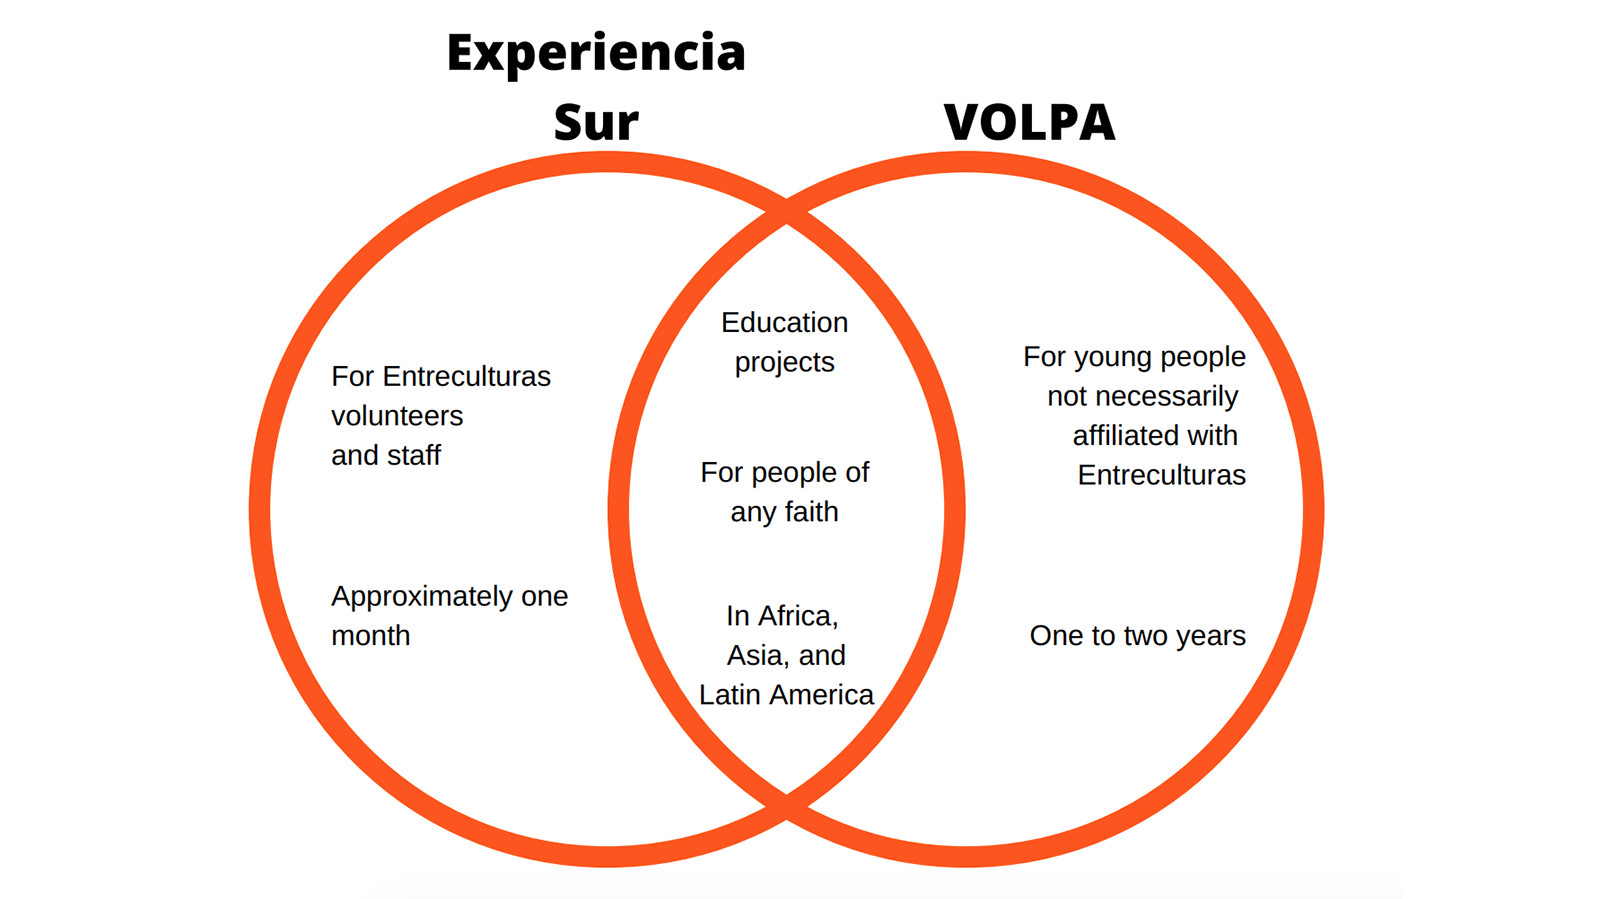 Venn Diagram showing where facts and requisites about Experiencia Sur and VOLPA overlap